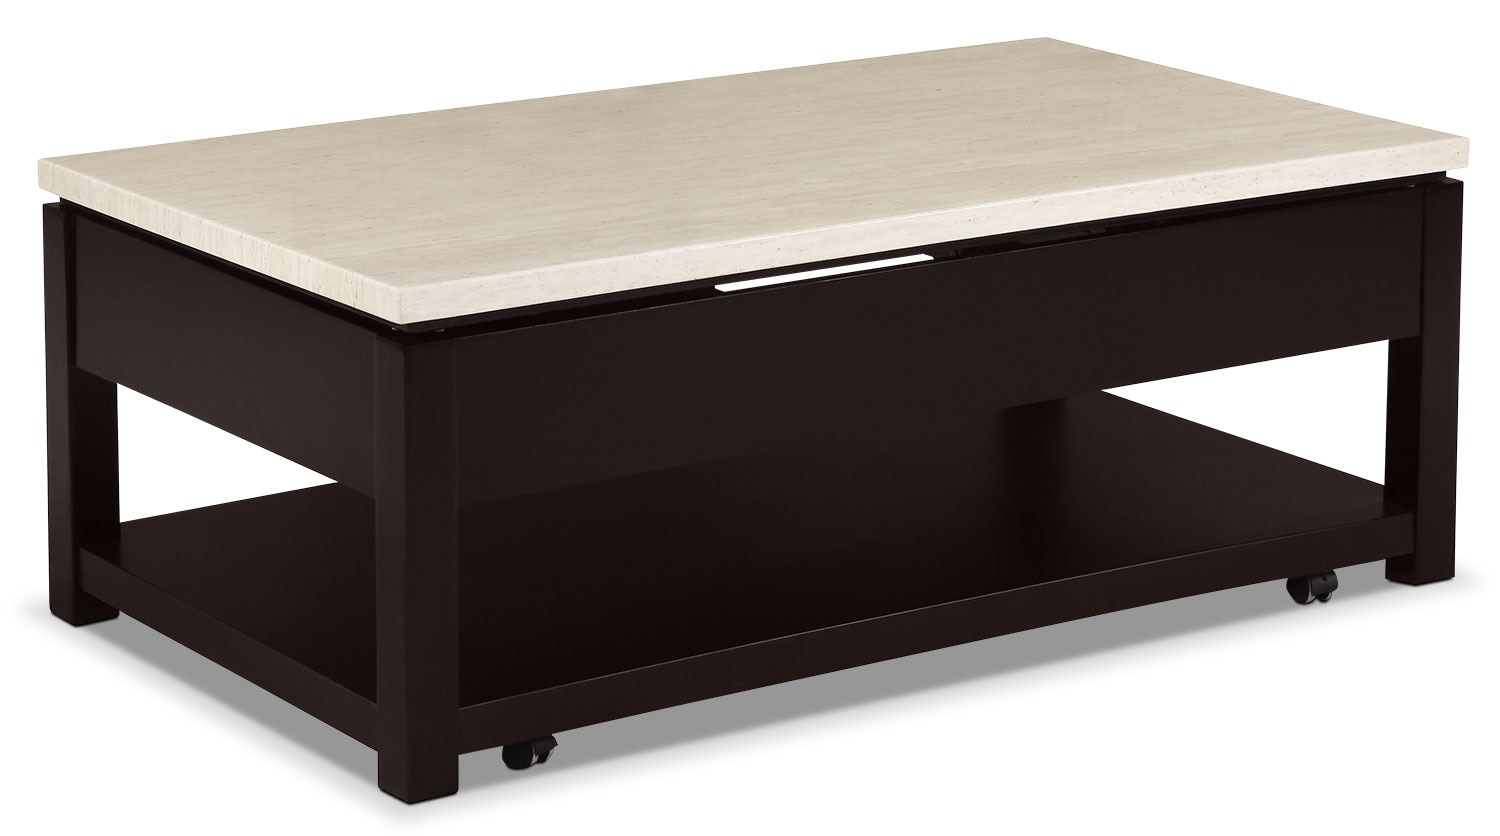 Sicily coffee table with lift top and casters beige the brick Coffee tables with casters